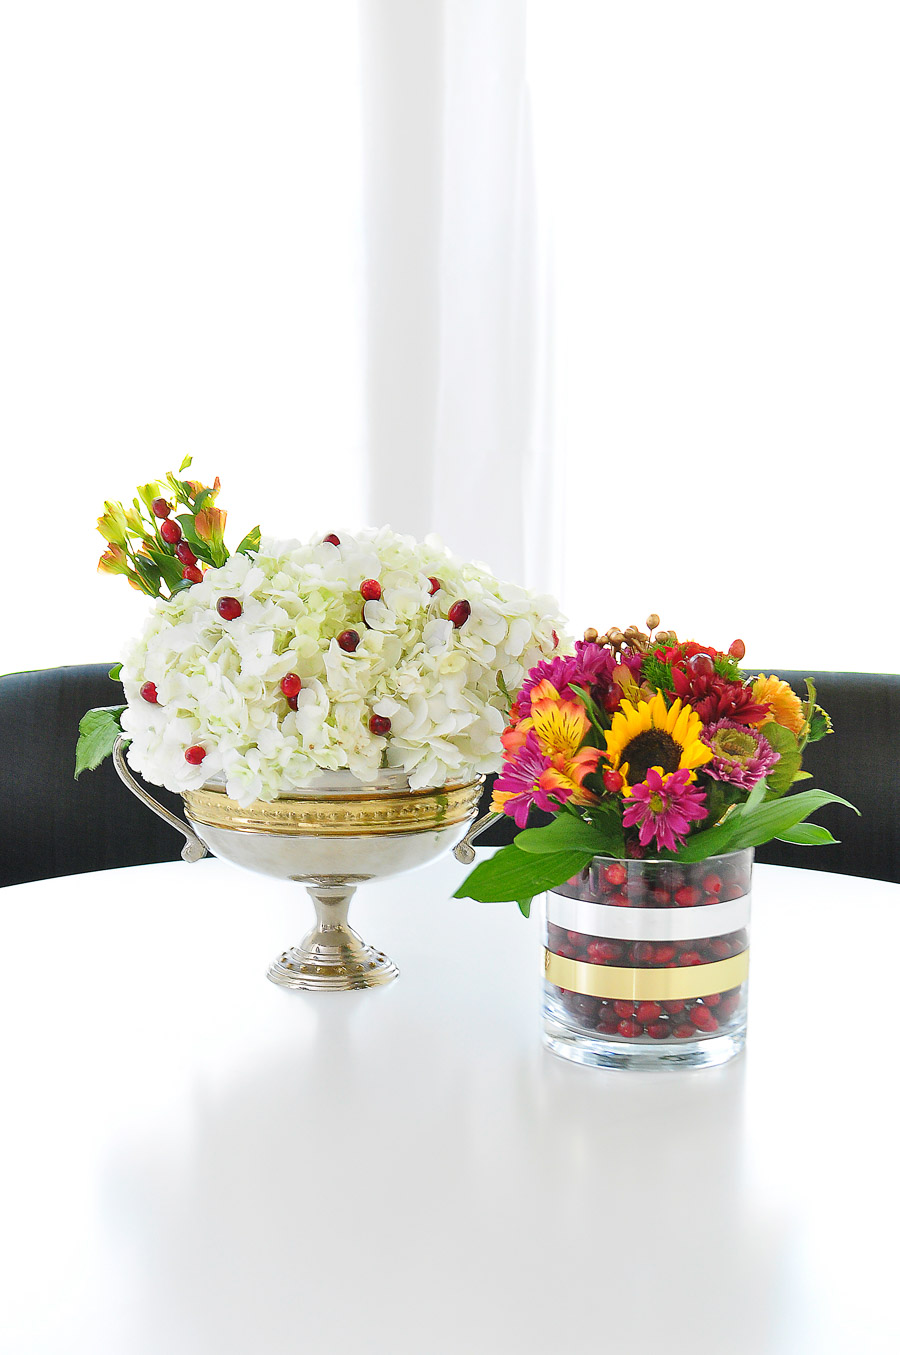 These simple floral and cranberry centerpieces will add a touch of elegance to any holiday tablescape.